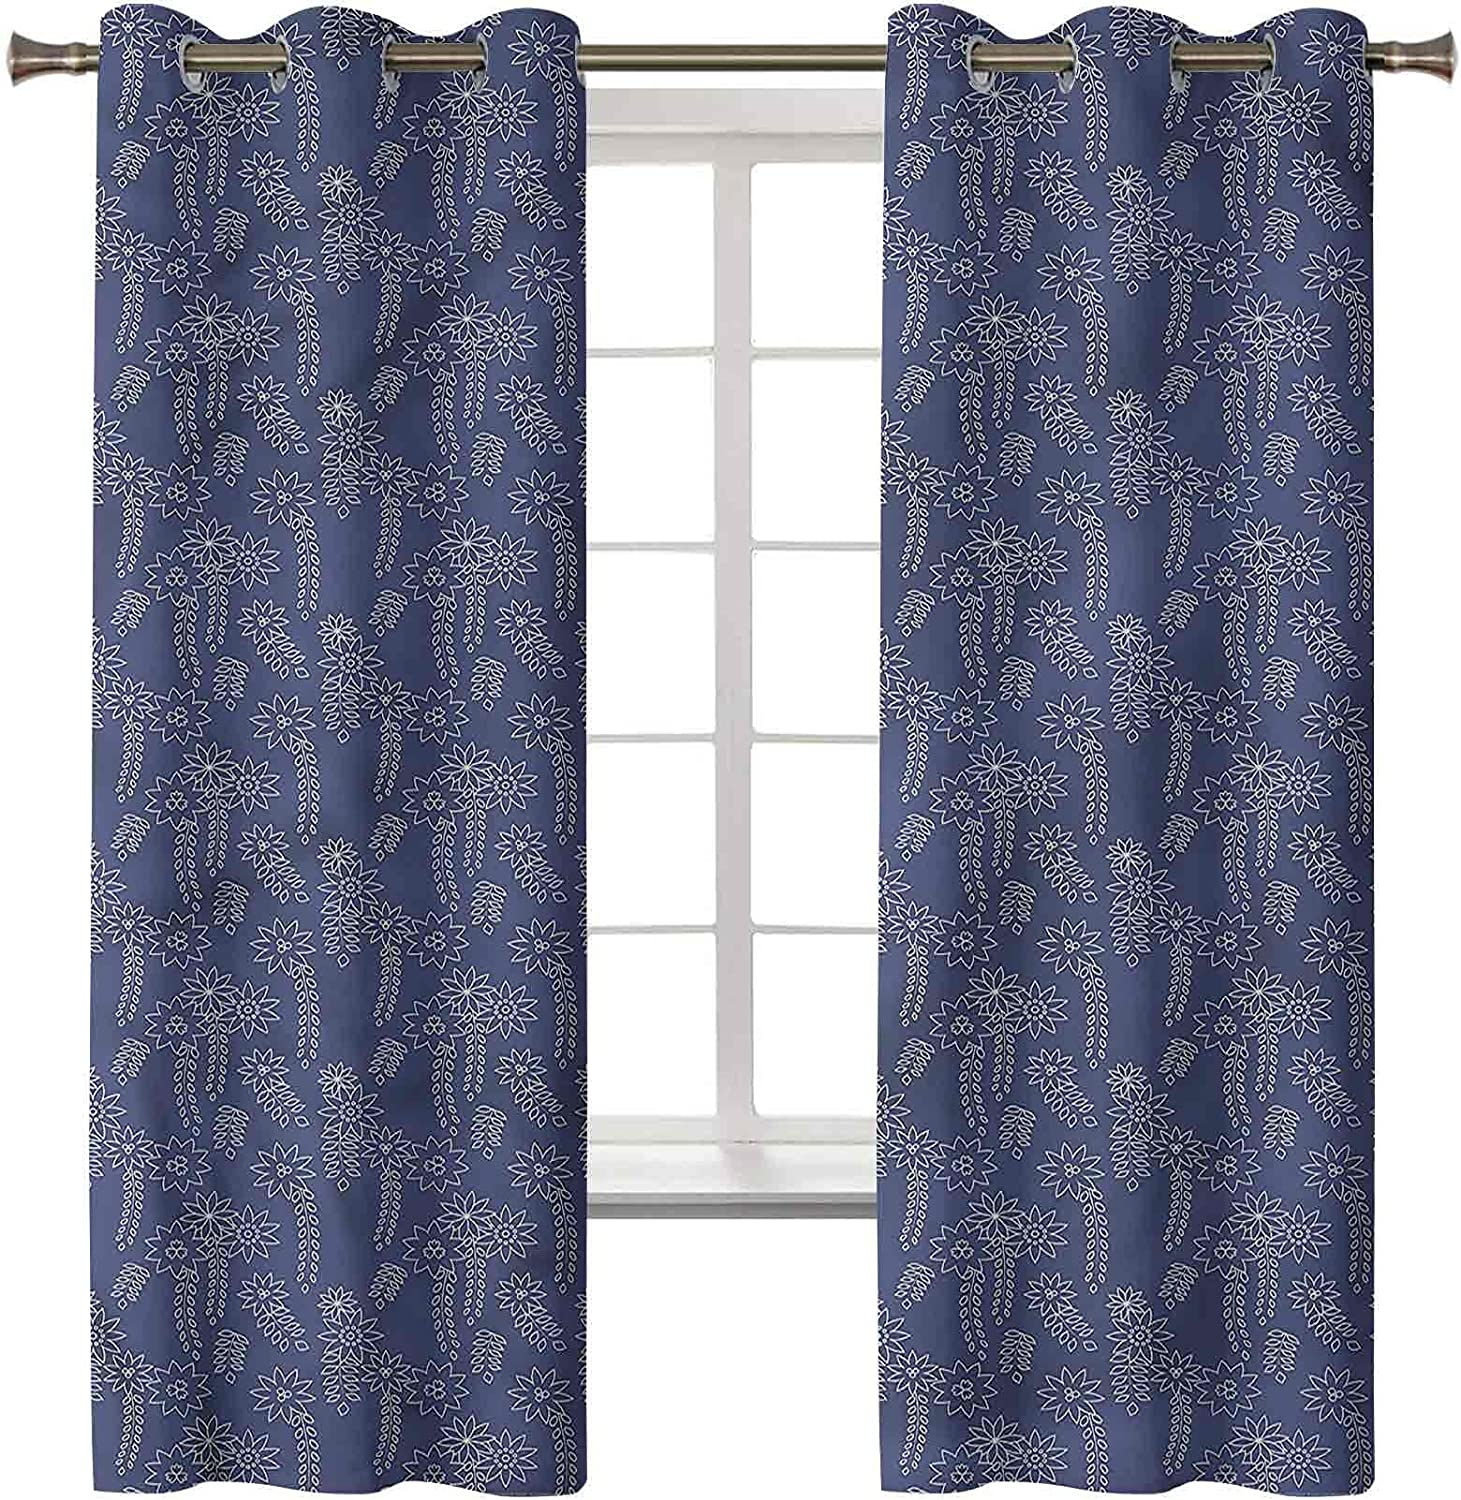 SALENEW very popular! Japanese Blackout Thermal Curtains Set of 2021 45L Panels x In 38W 2